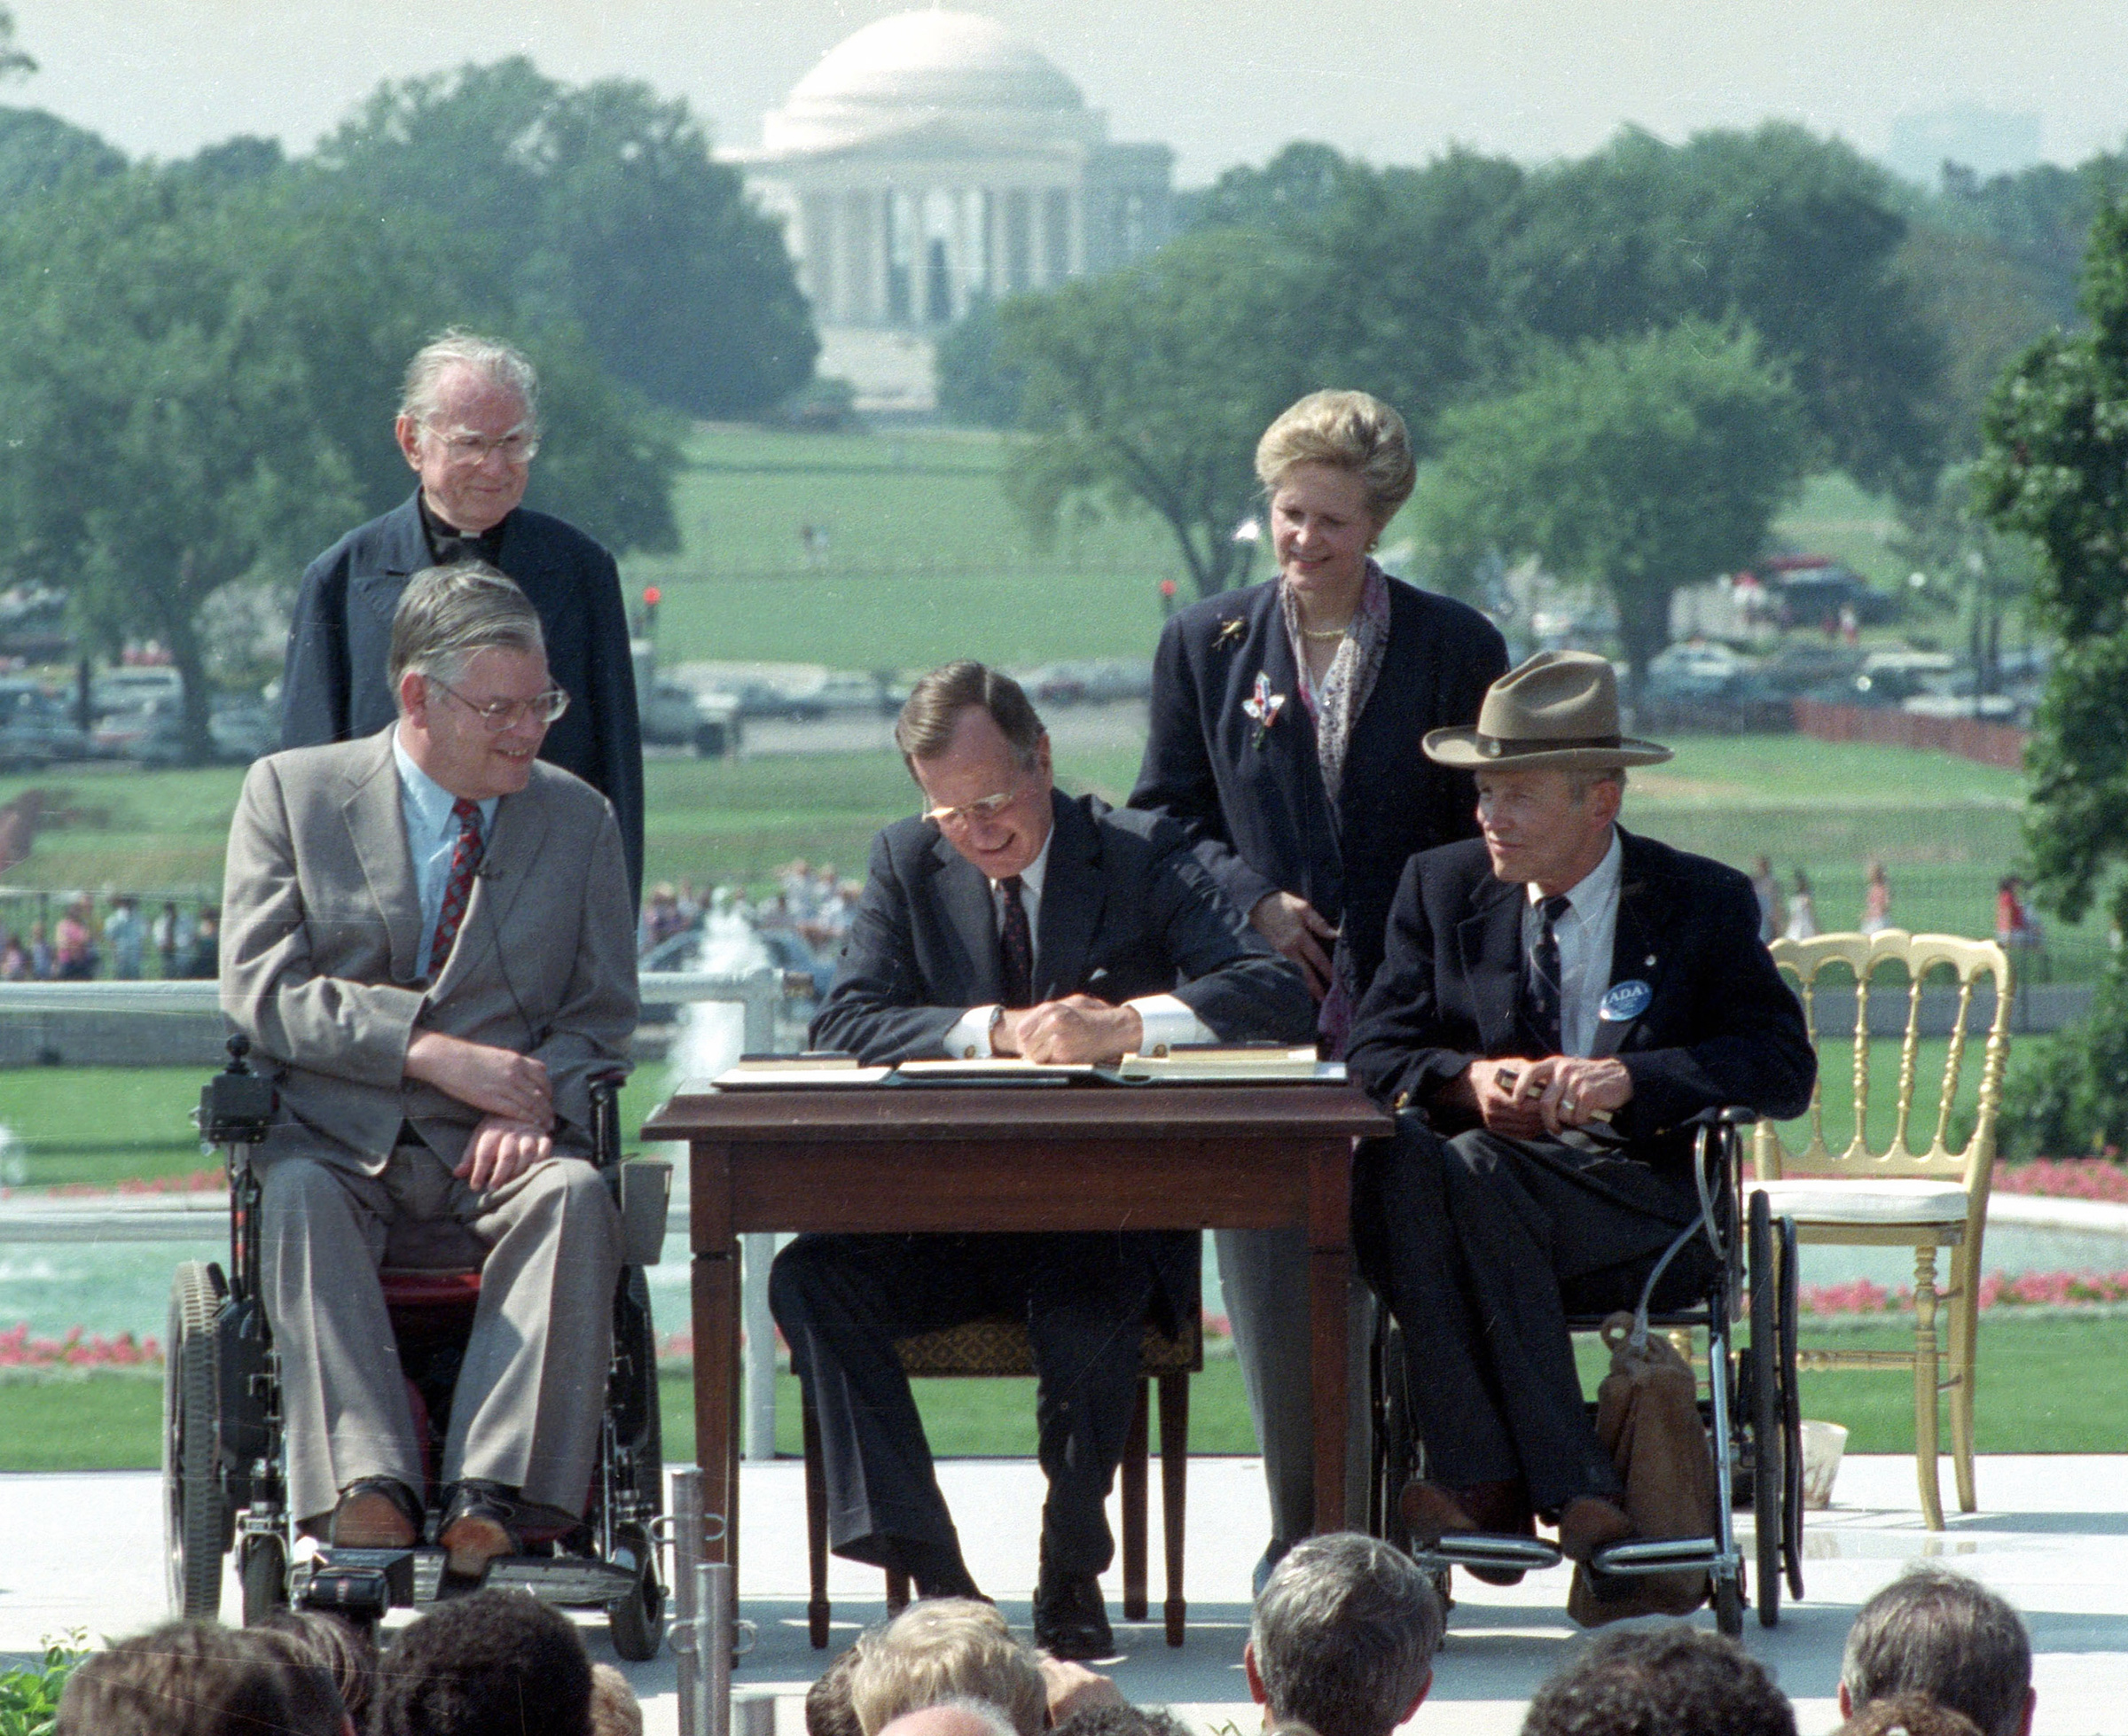 President George H.W. Bush signs the ADA in 1990